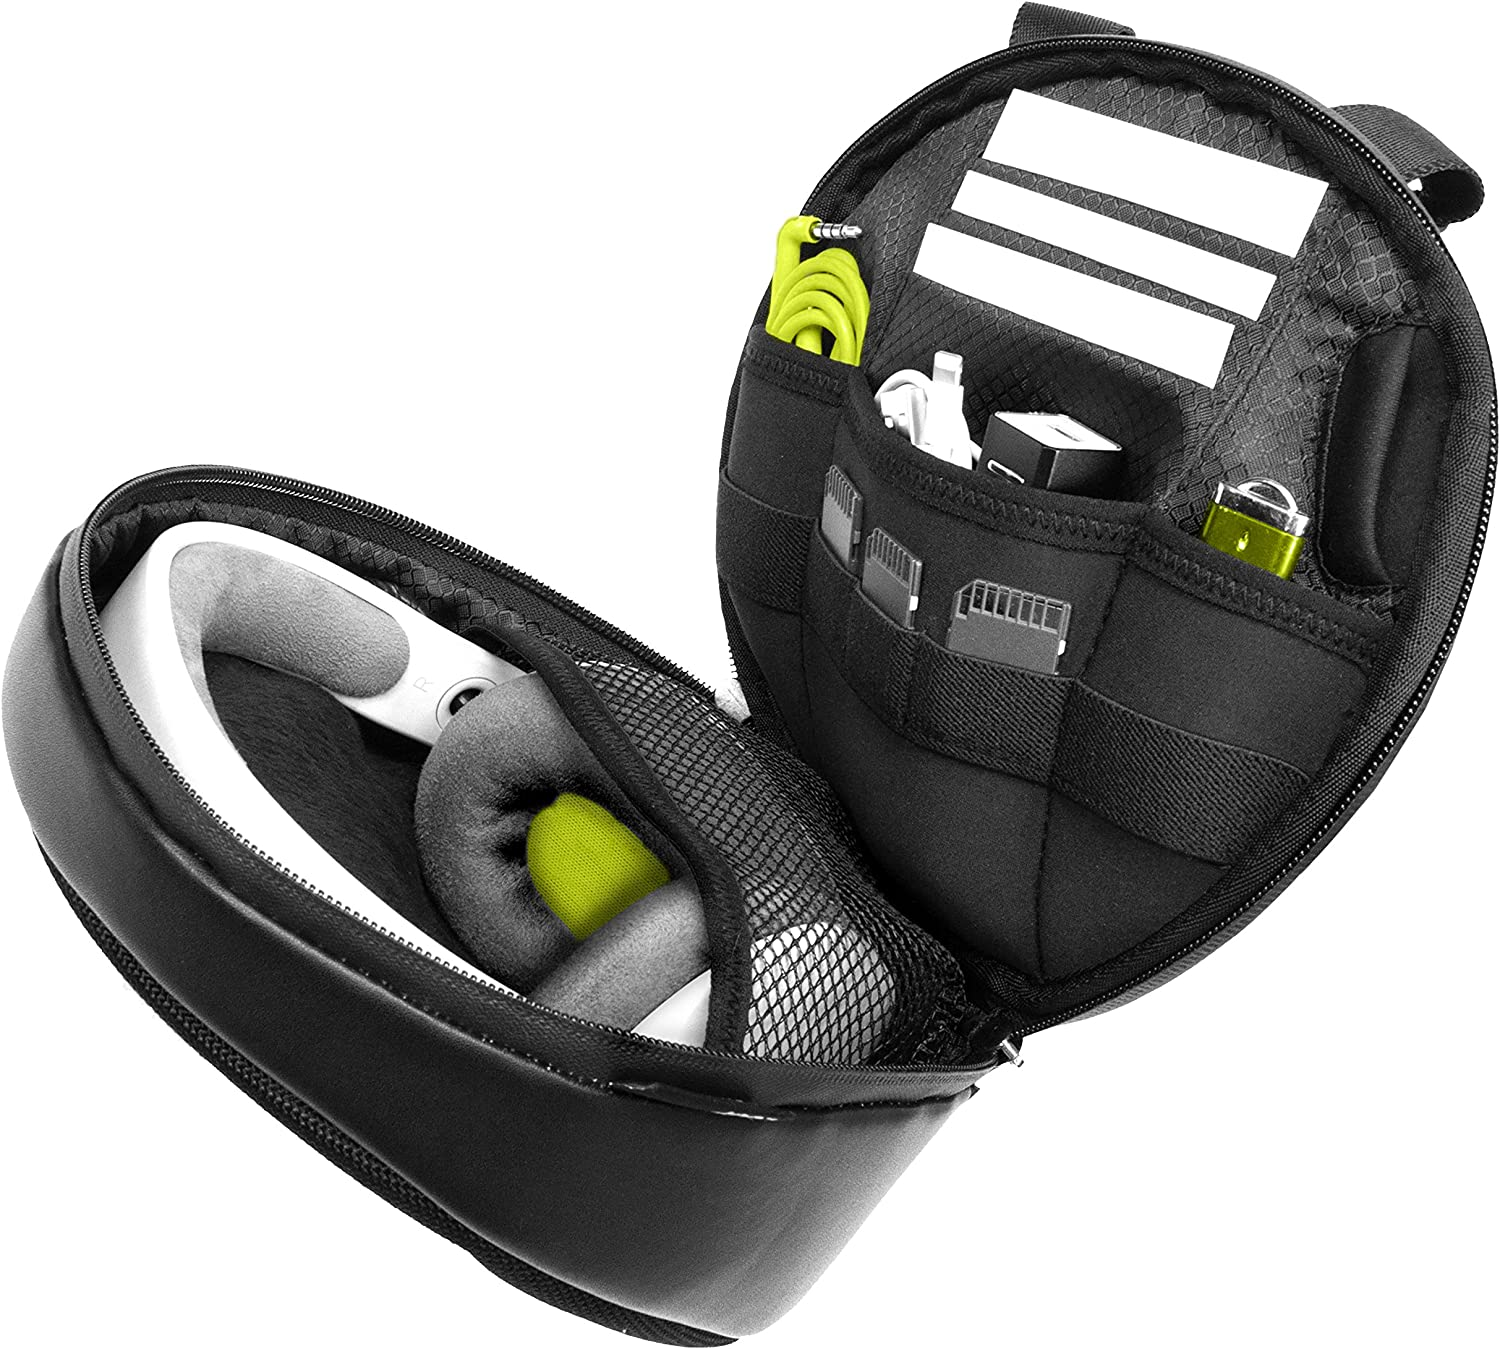 Orbit Concepts DELOOP SPORT Ballistic Nylon Universal Carrying Bag/Case for On-Ear Headphones and Accessories, Fits Sennheiser, Sony, Audio Technica, all Beats by Dre and more